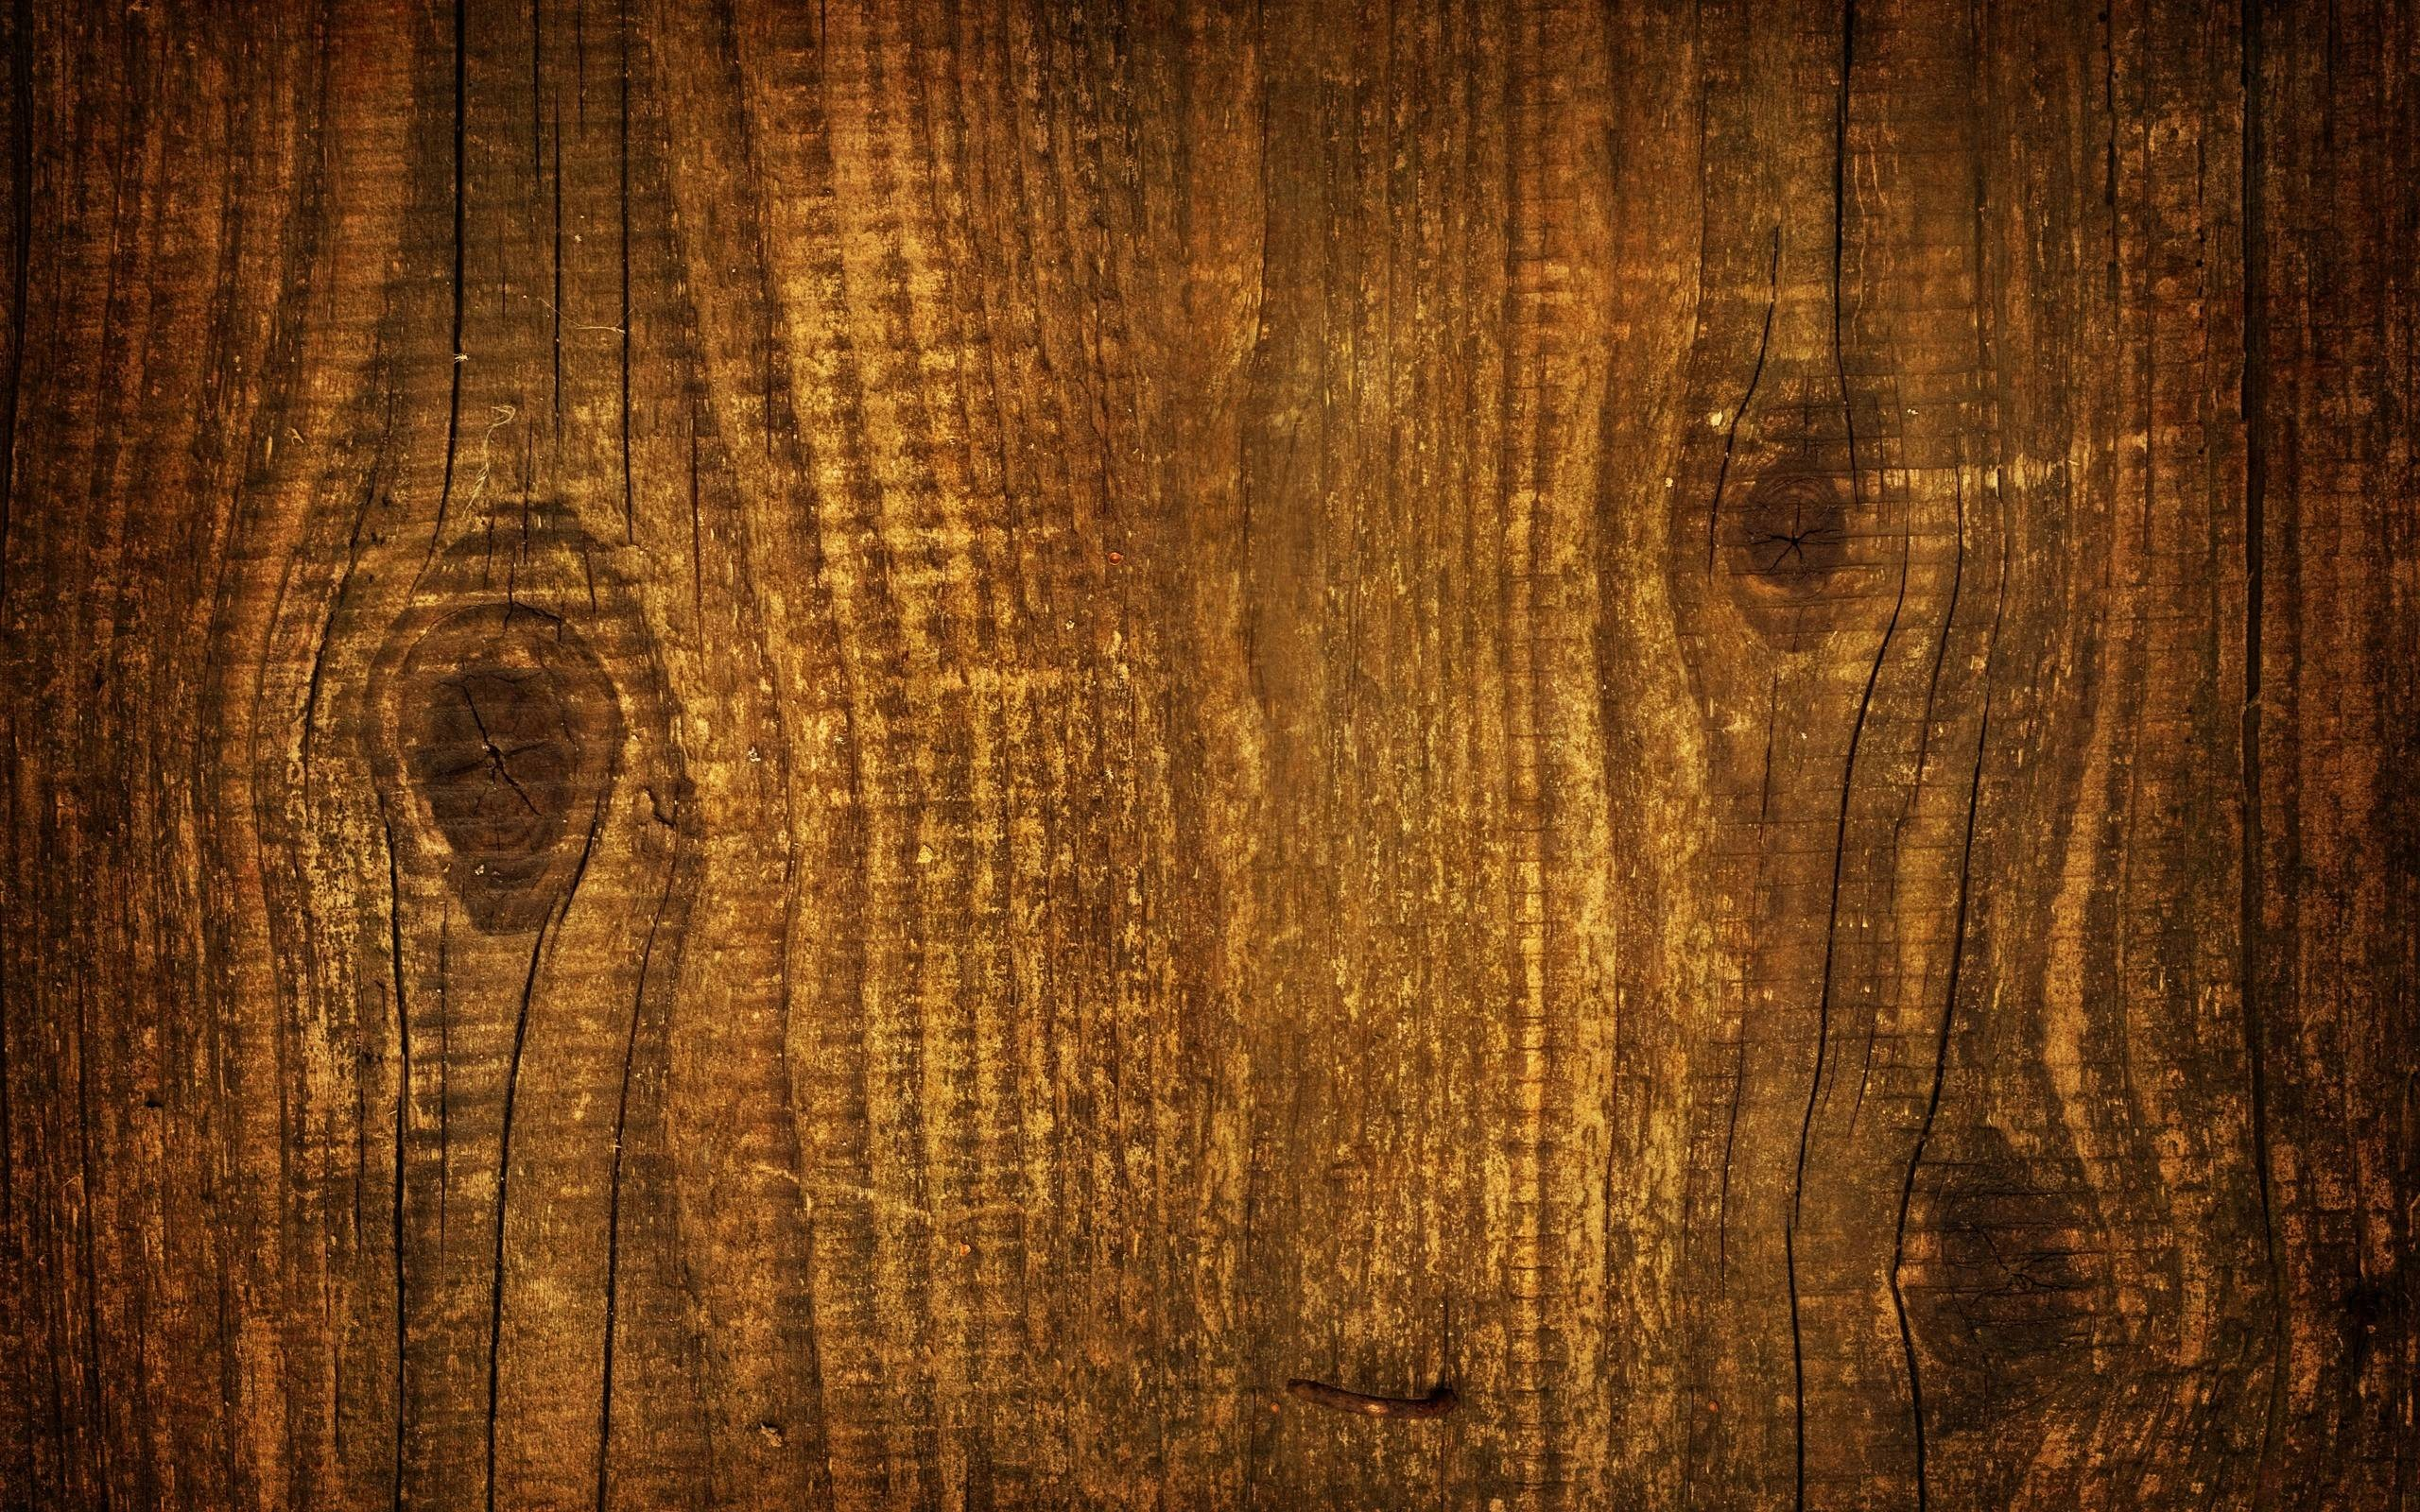 Rustic Barn Wood Background Download Free Beautiful HD Wallpapers Download Free Images Wallpaper [1000image.com]